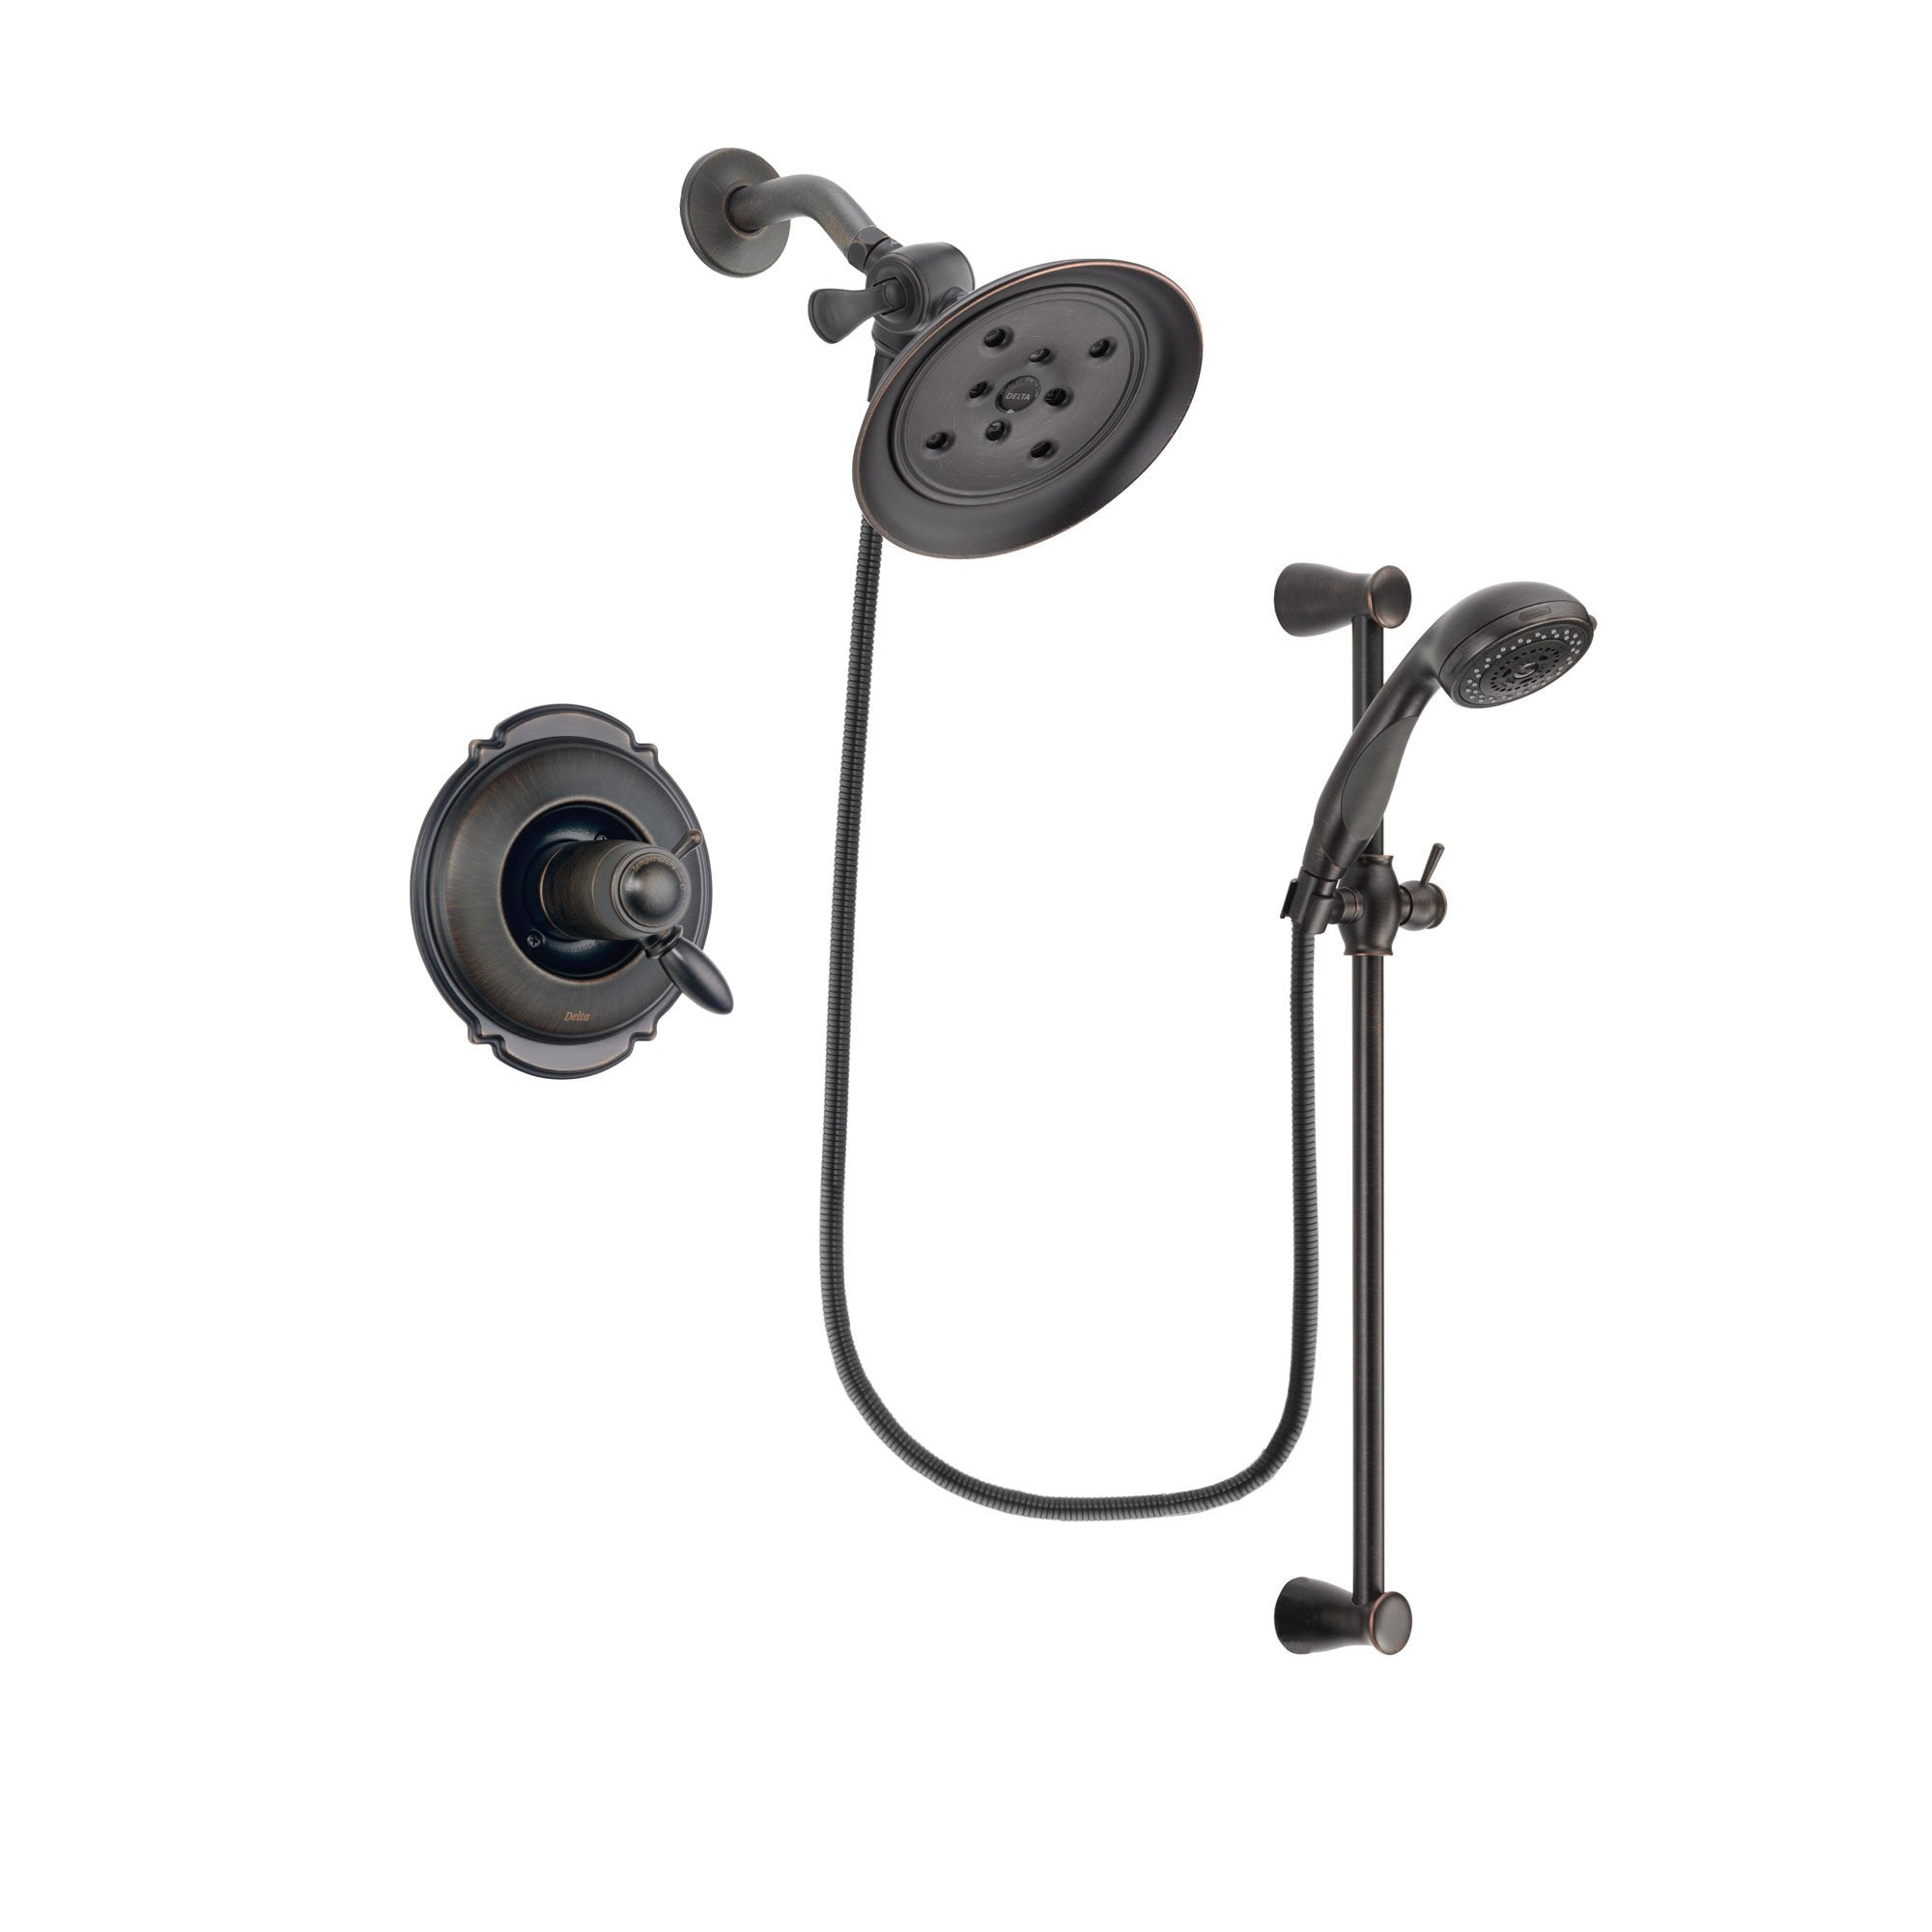 Merveilleux Delta Victorian Venetian Bronze Finish Thermostatic Shower Faucet System  Package With Large Rain Shower Head And